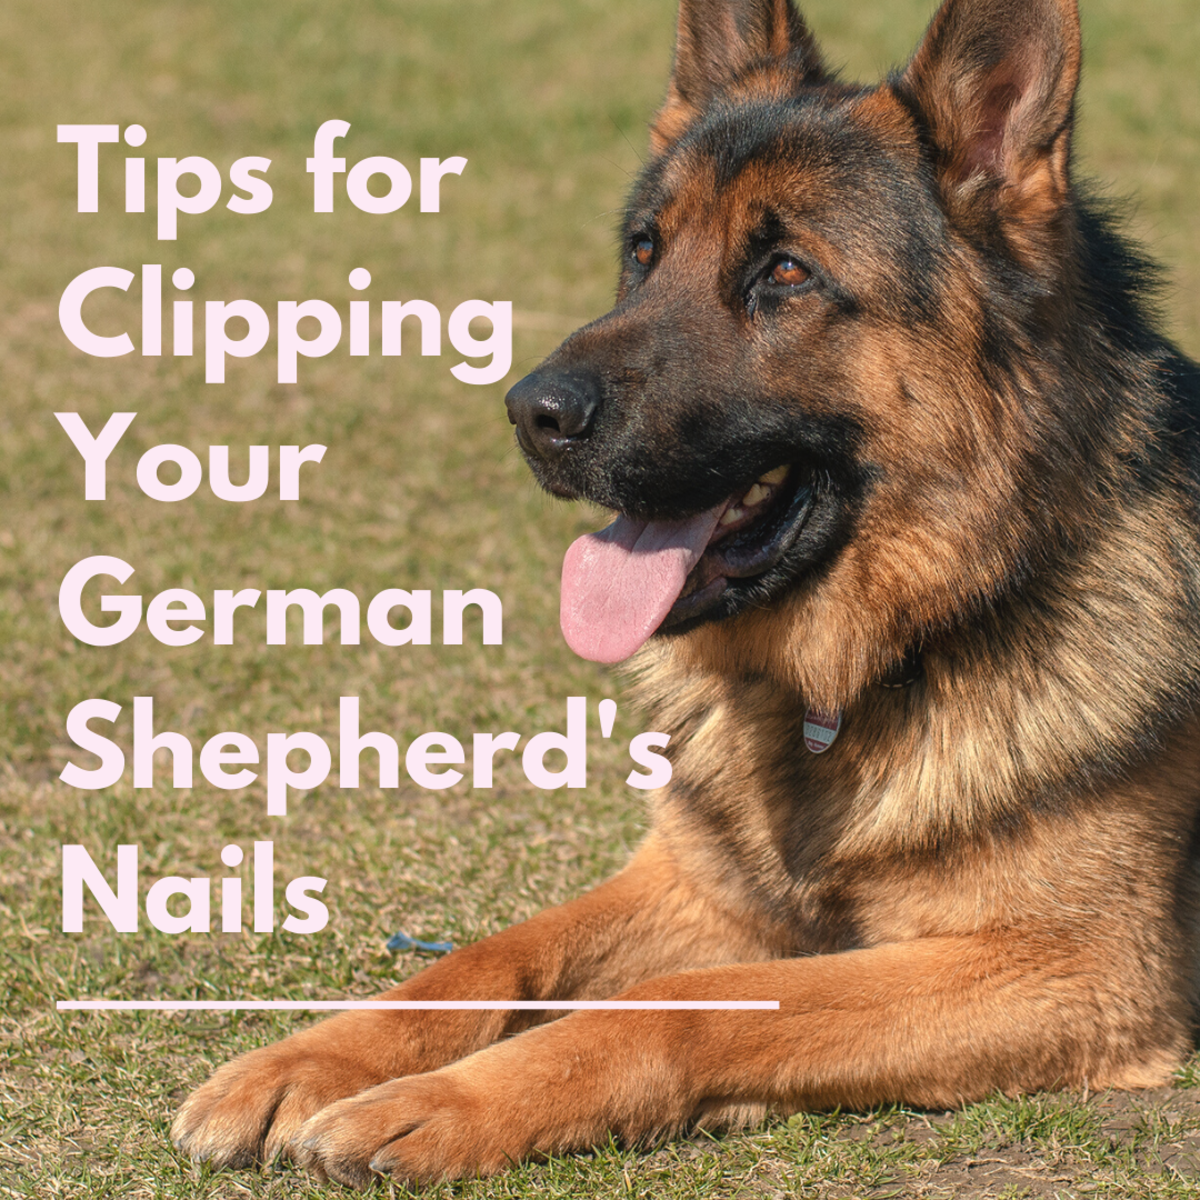 Good nail care is important!